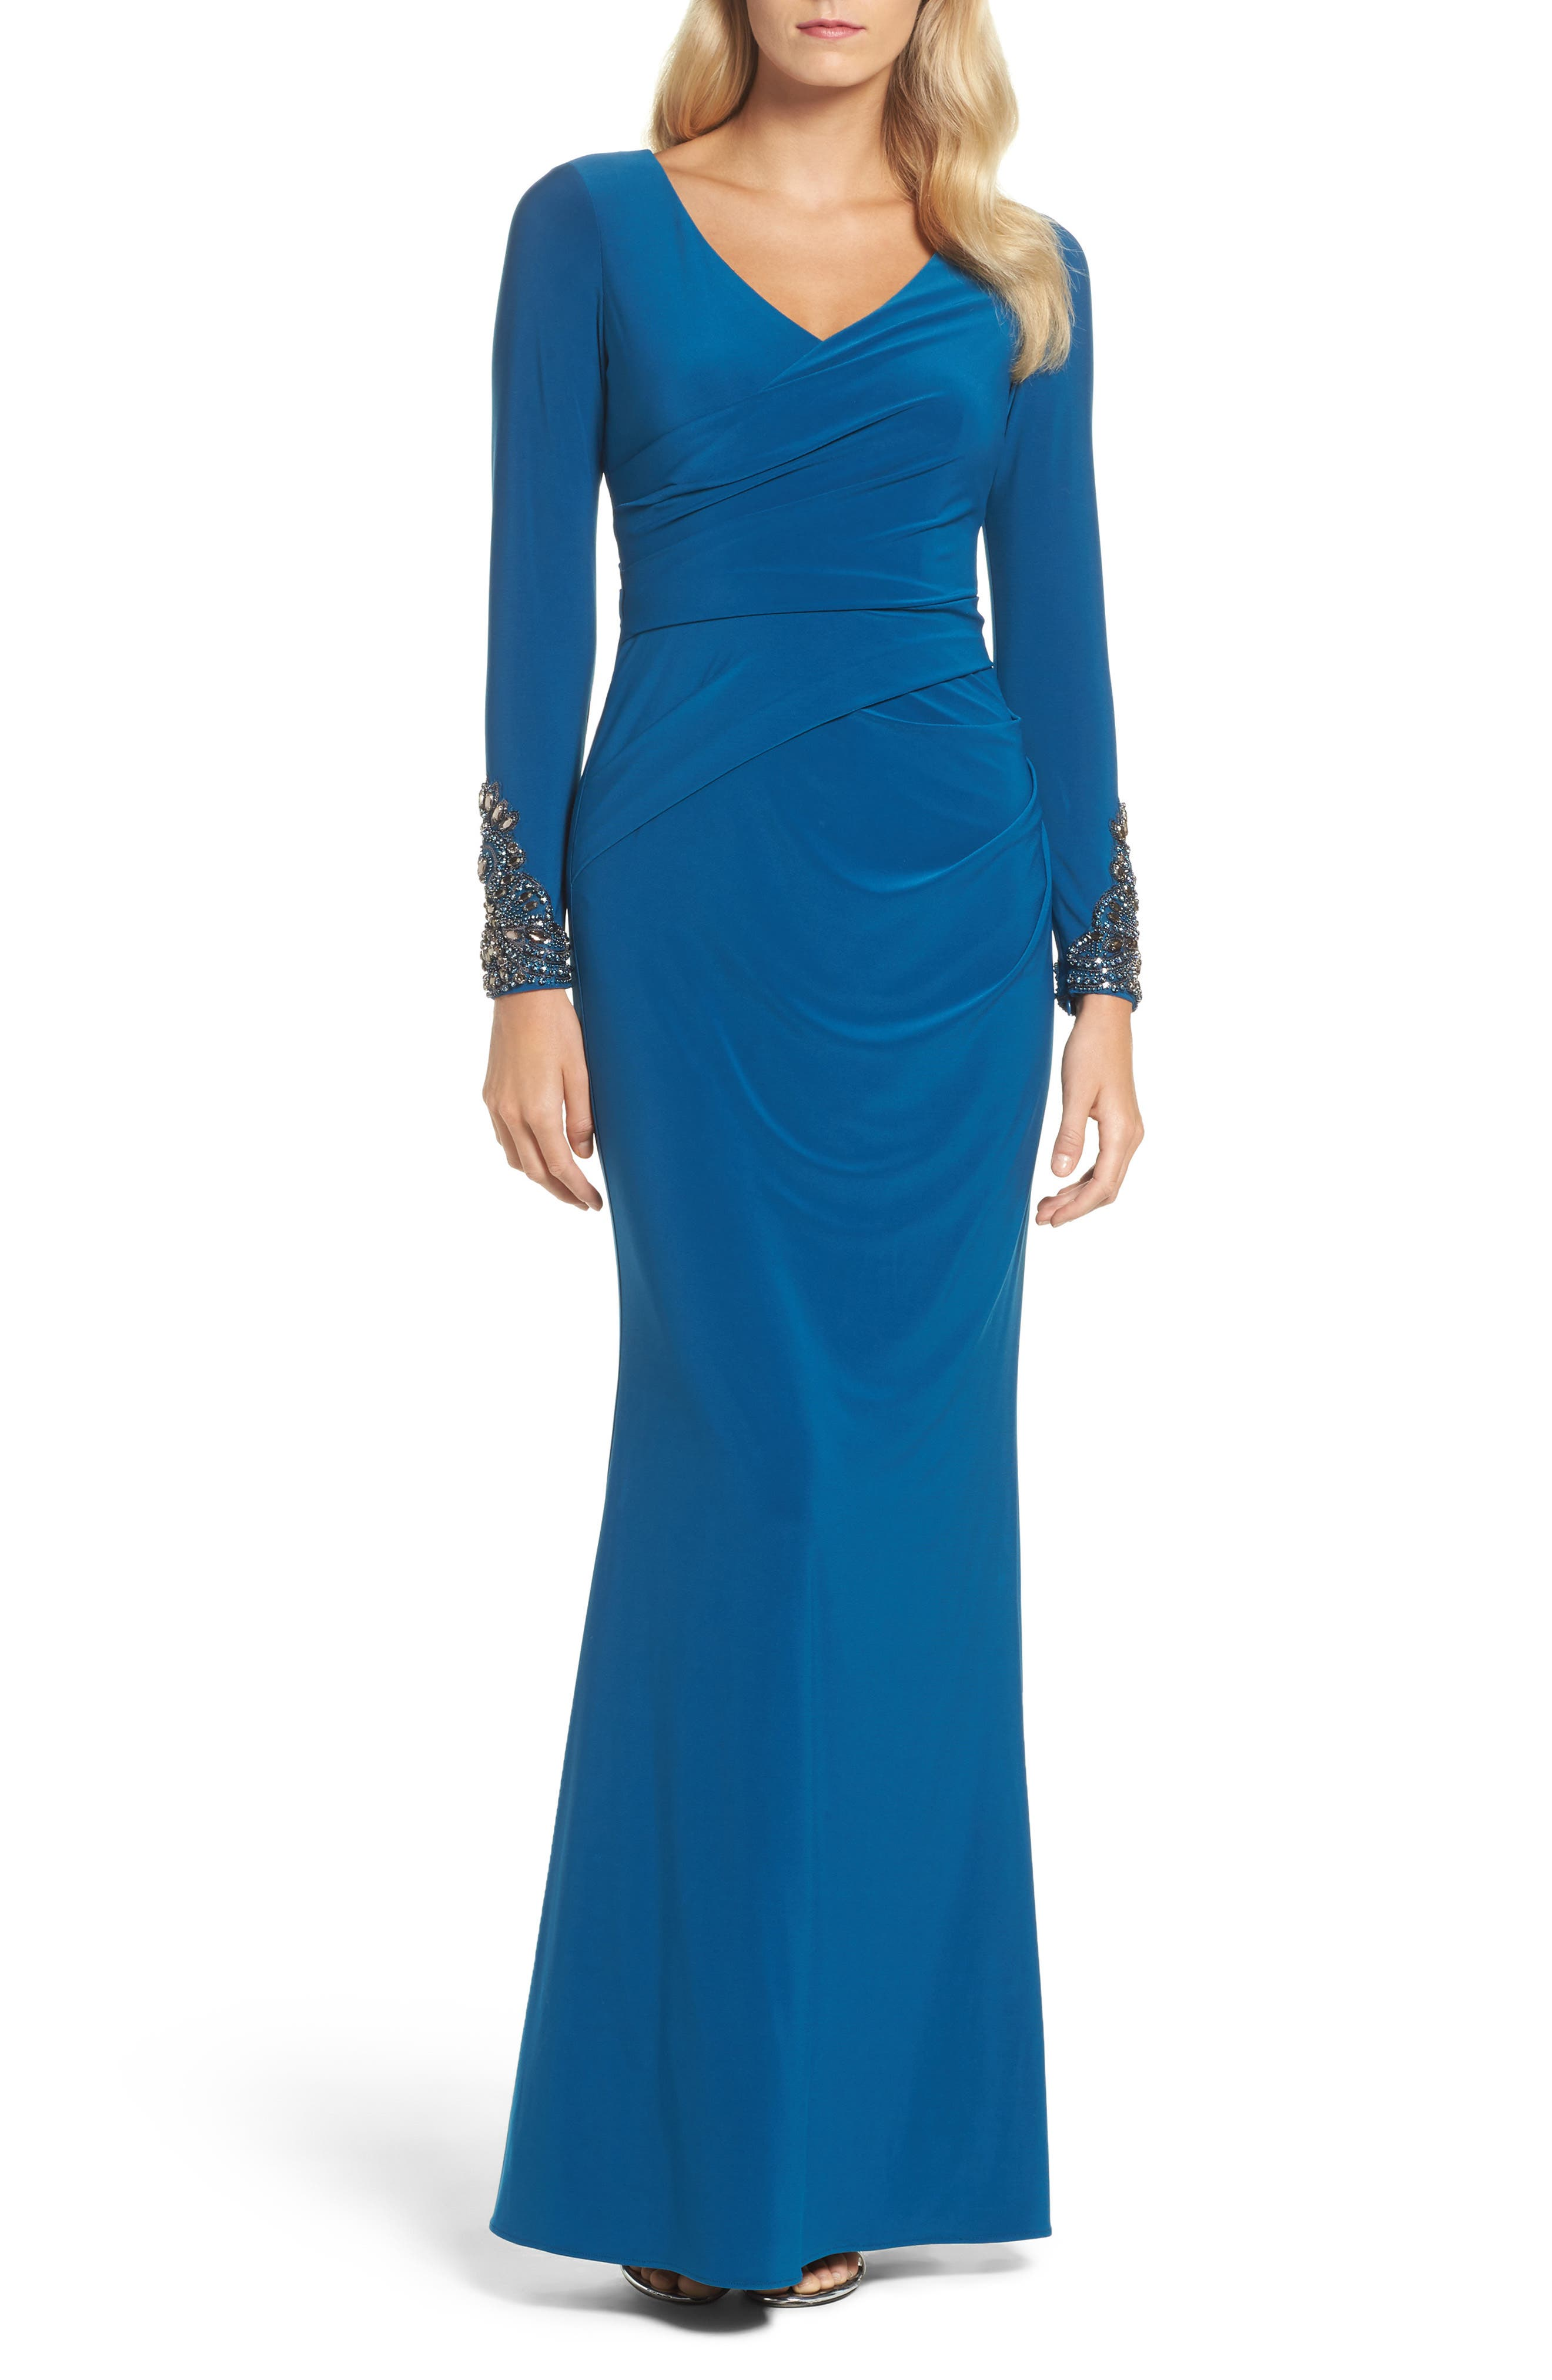 Main Image - Adrianna Papell Embellished Sleeve Drape Gown